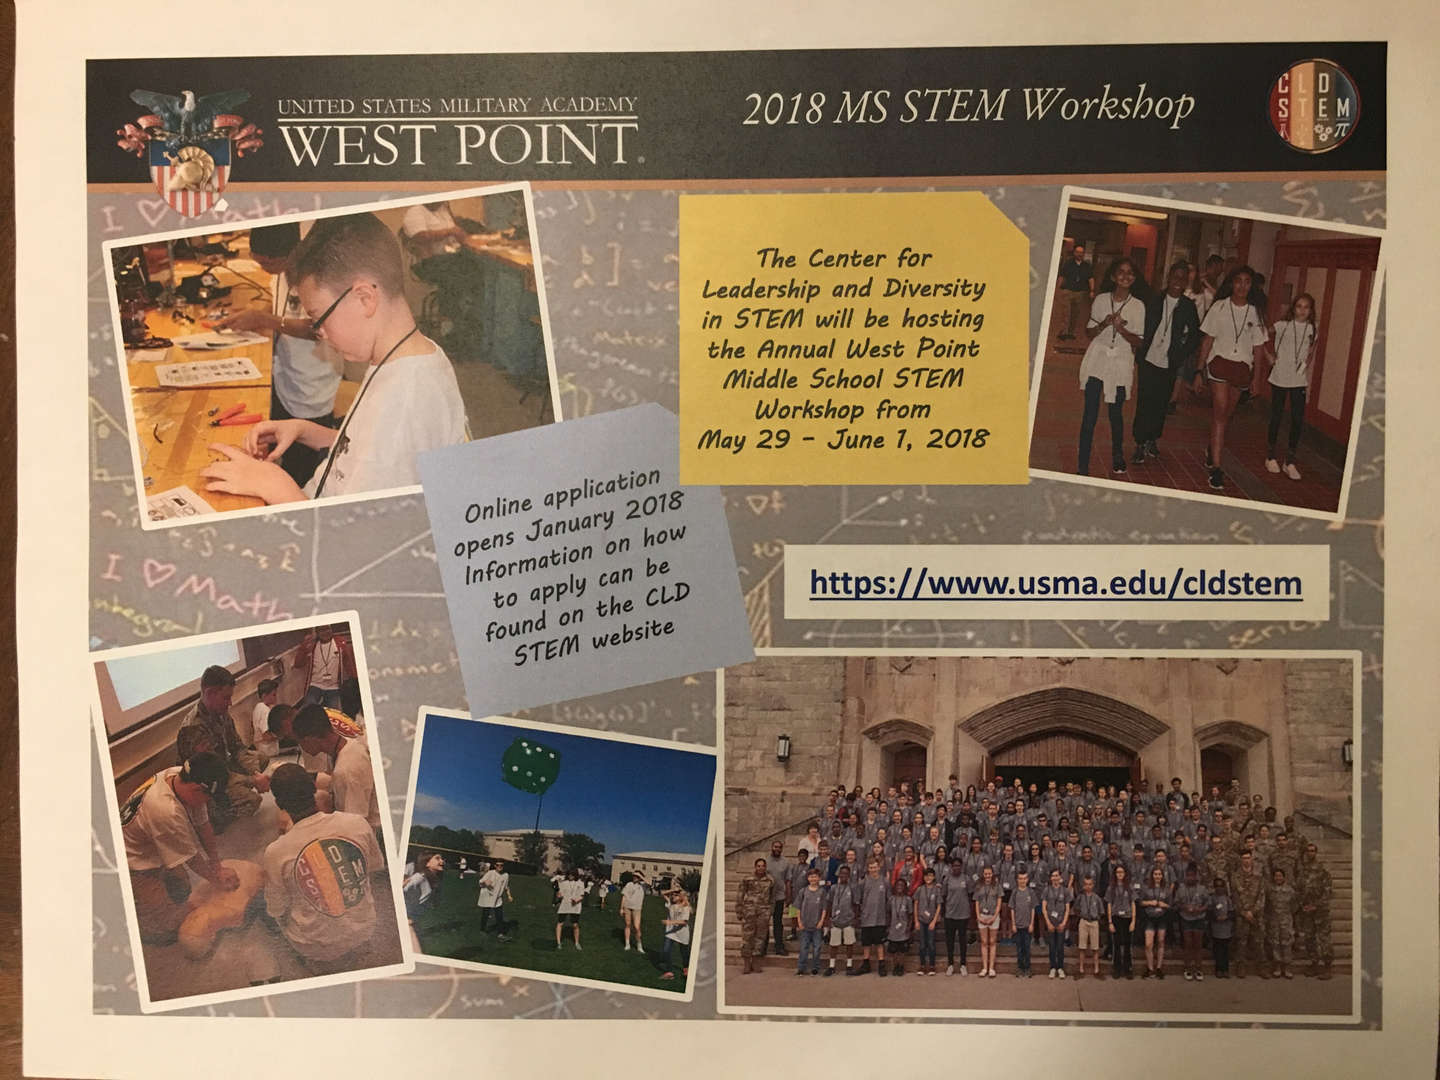 Promotional poster for the West Point 2018 MS STEM Workshop